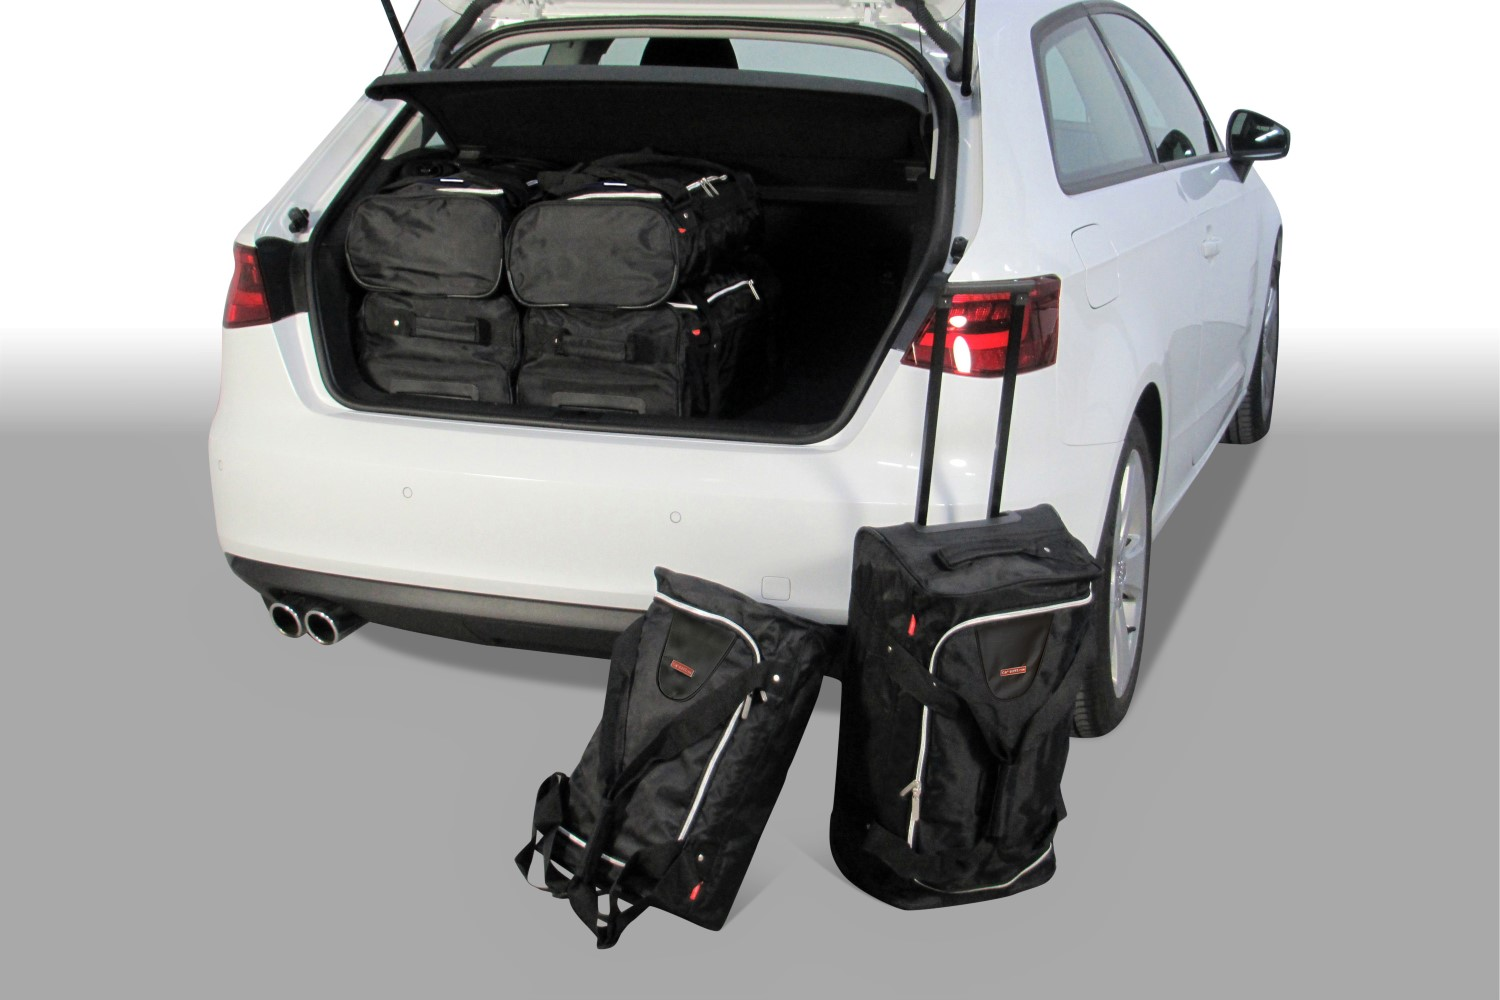 Audi A3 (8V) 2012- 3 door Car-Bags.com travel bag set (1)